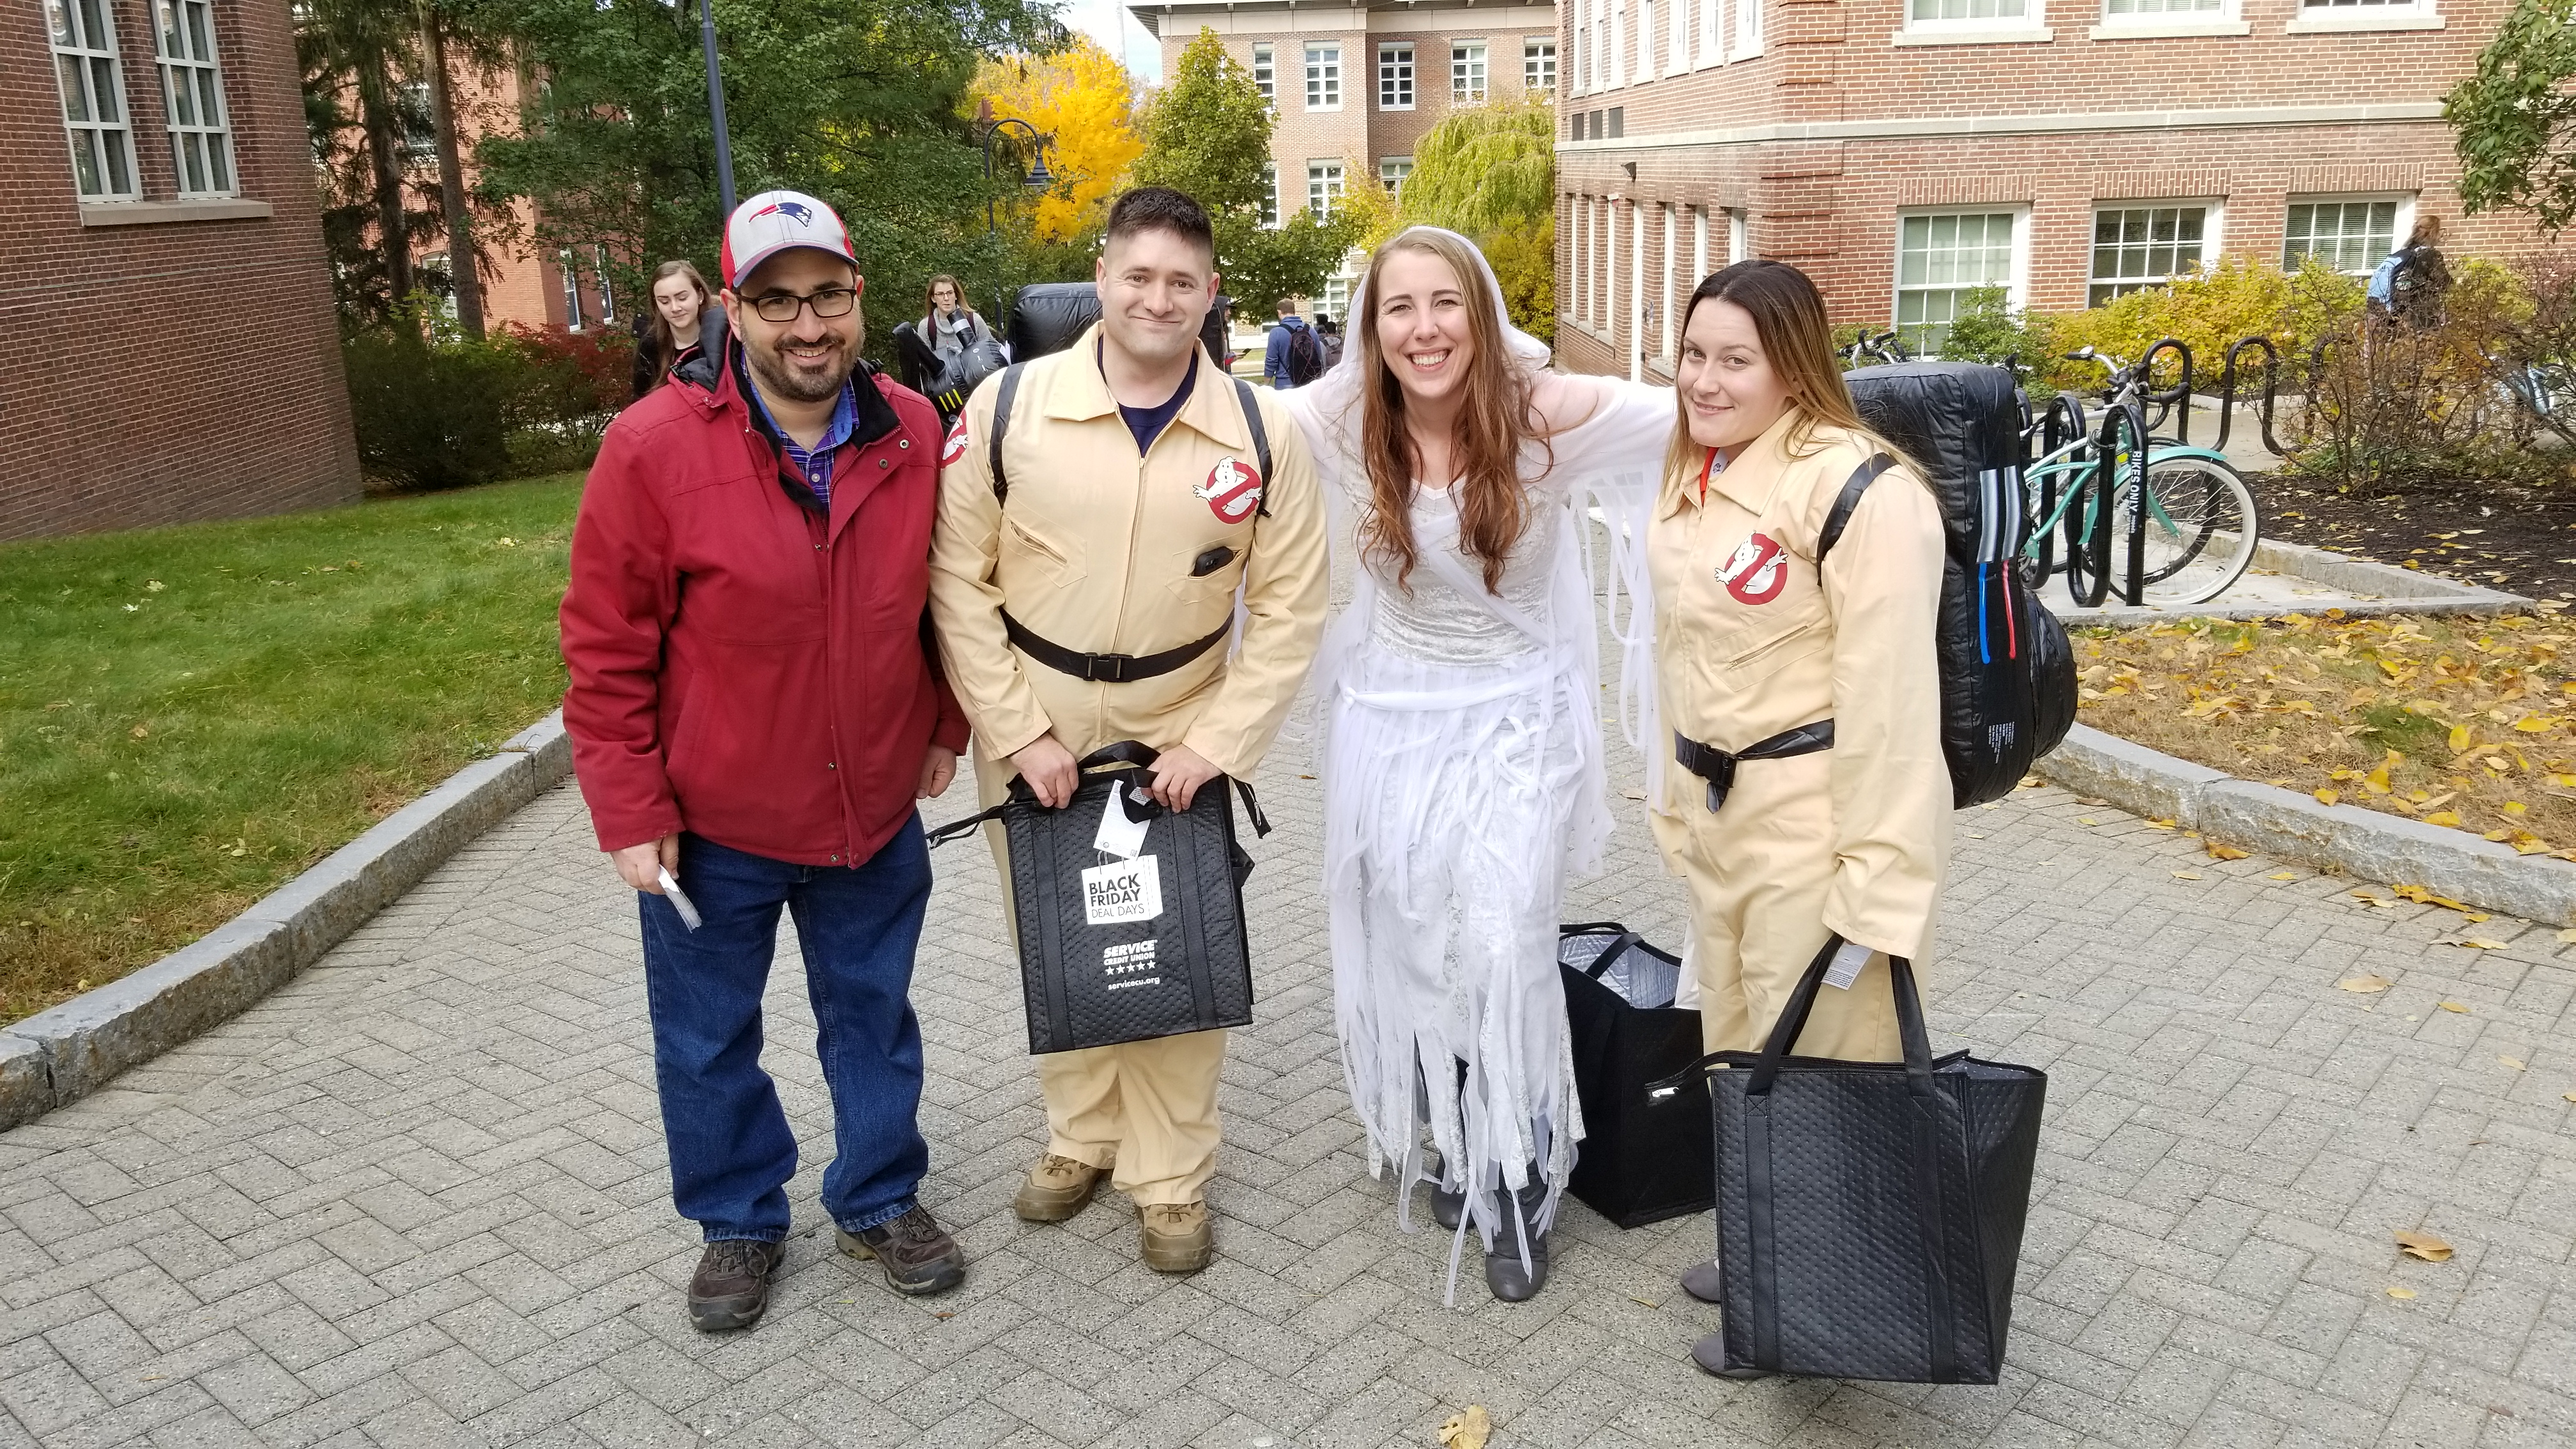 This was Halloween Day. You never know who you will run into on campus. Who you gonna call? Ghostbusters!